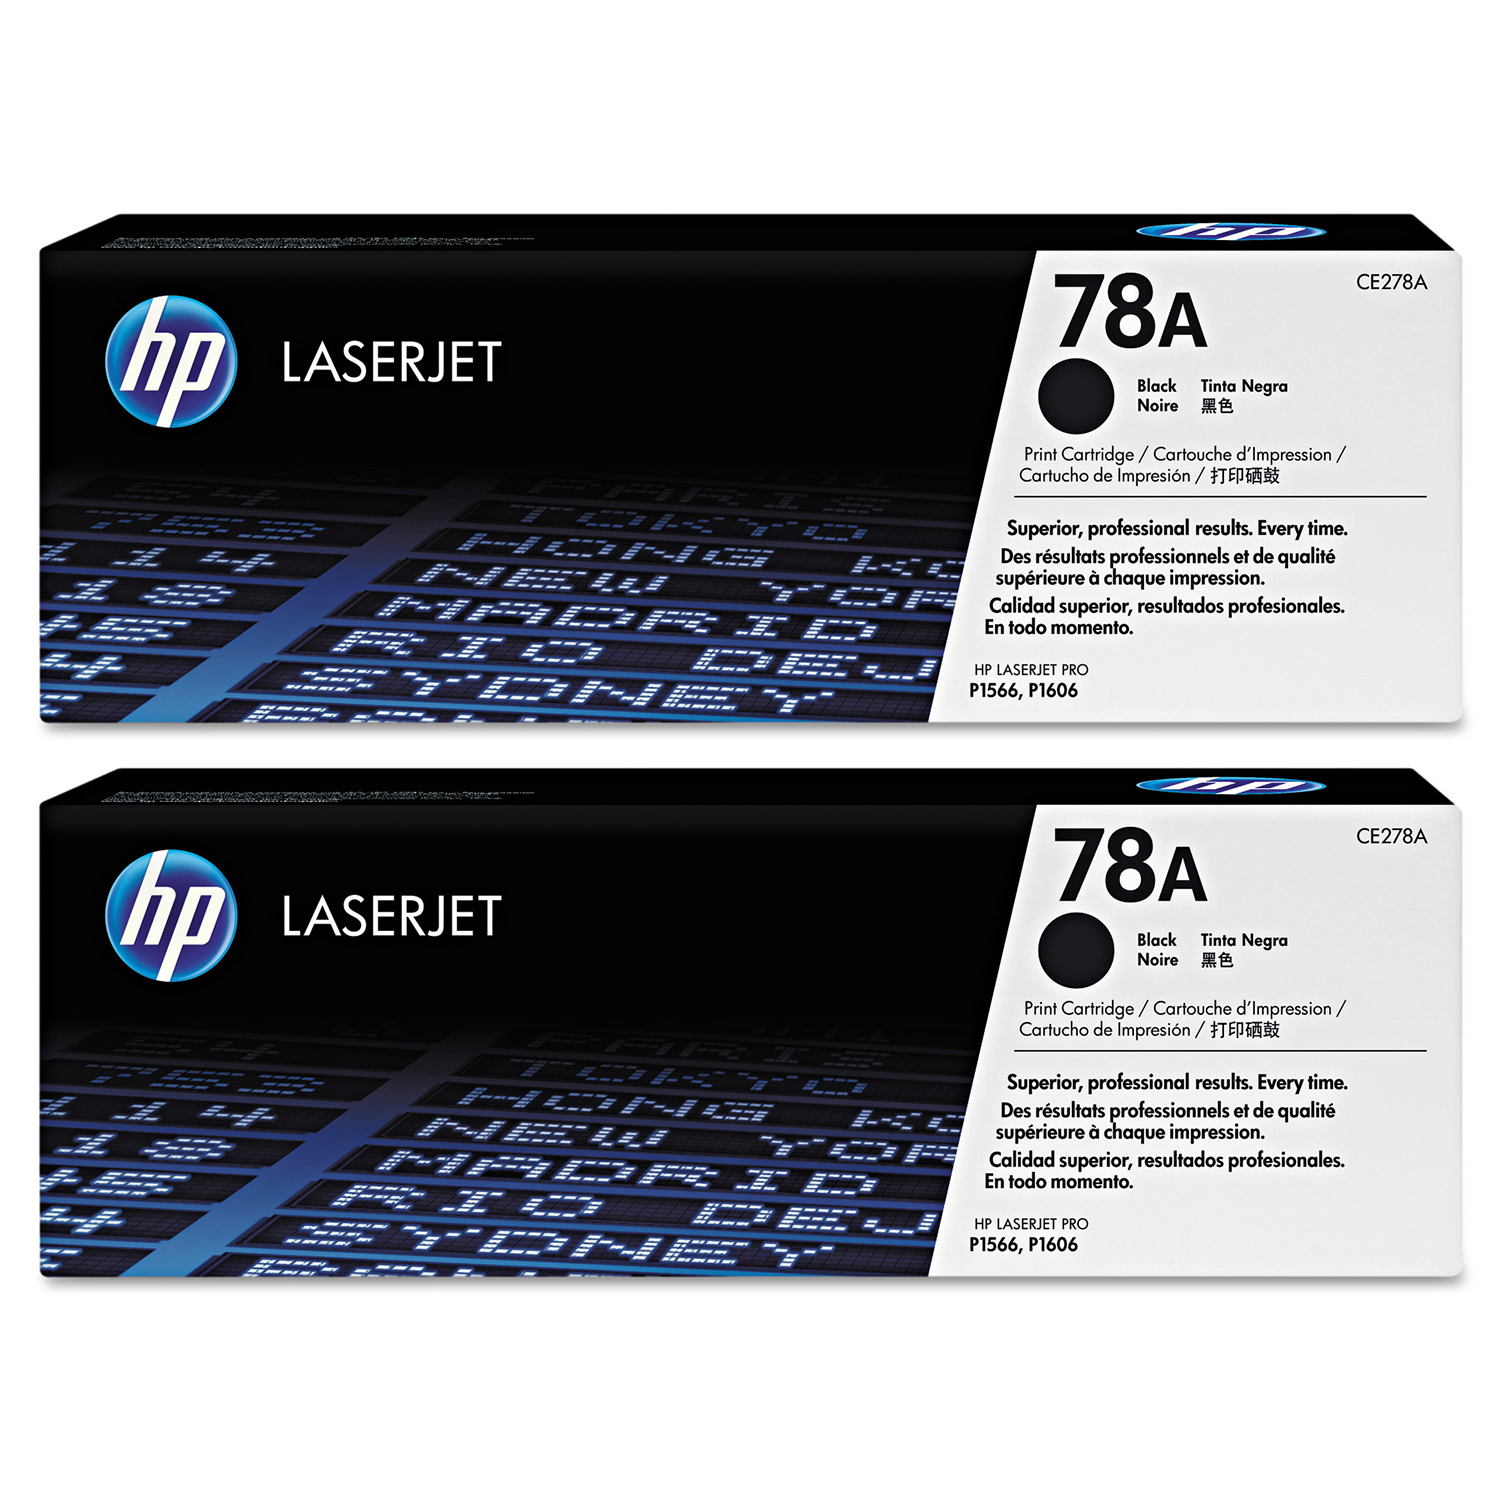 Buy two HP78A Black Toner and get $25 off